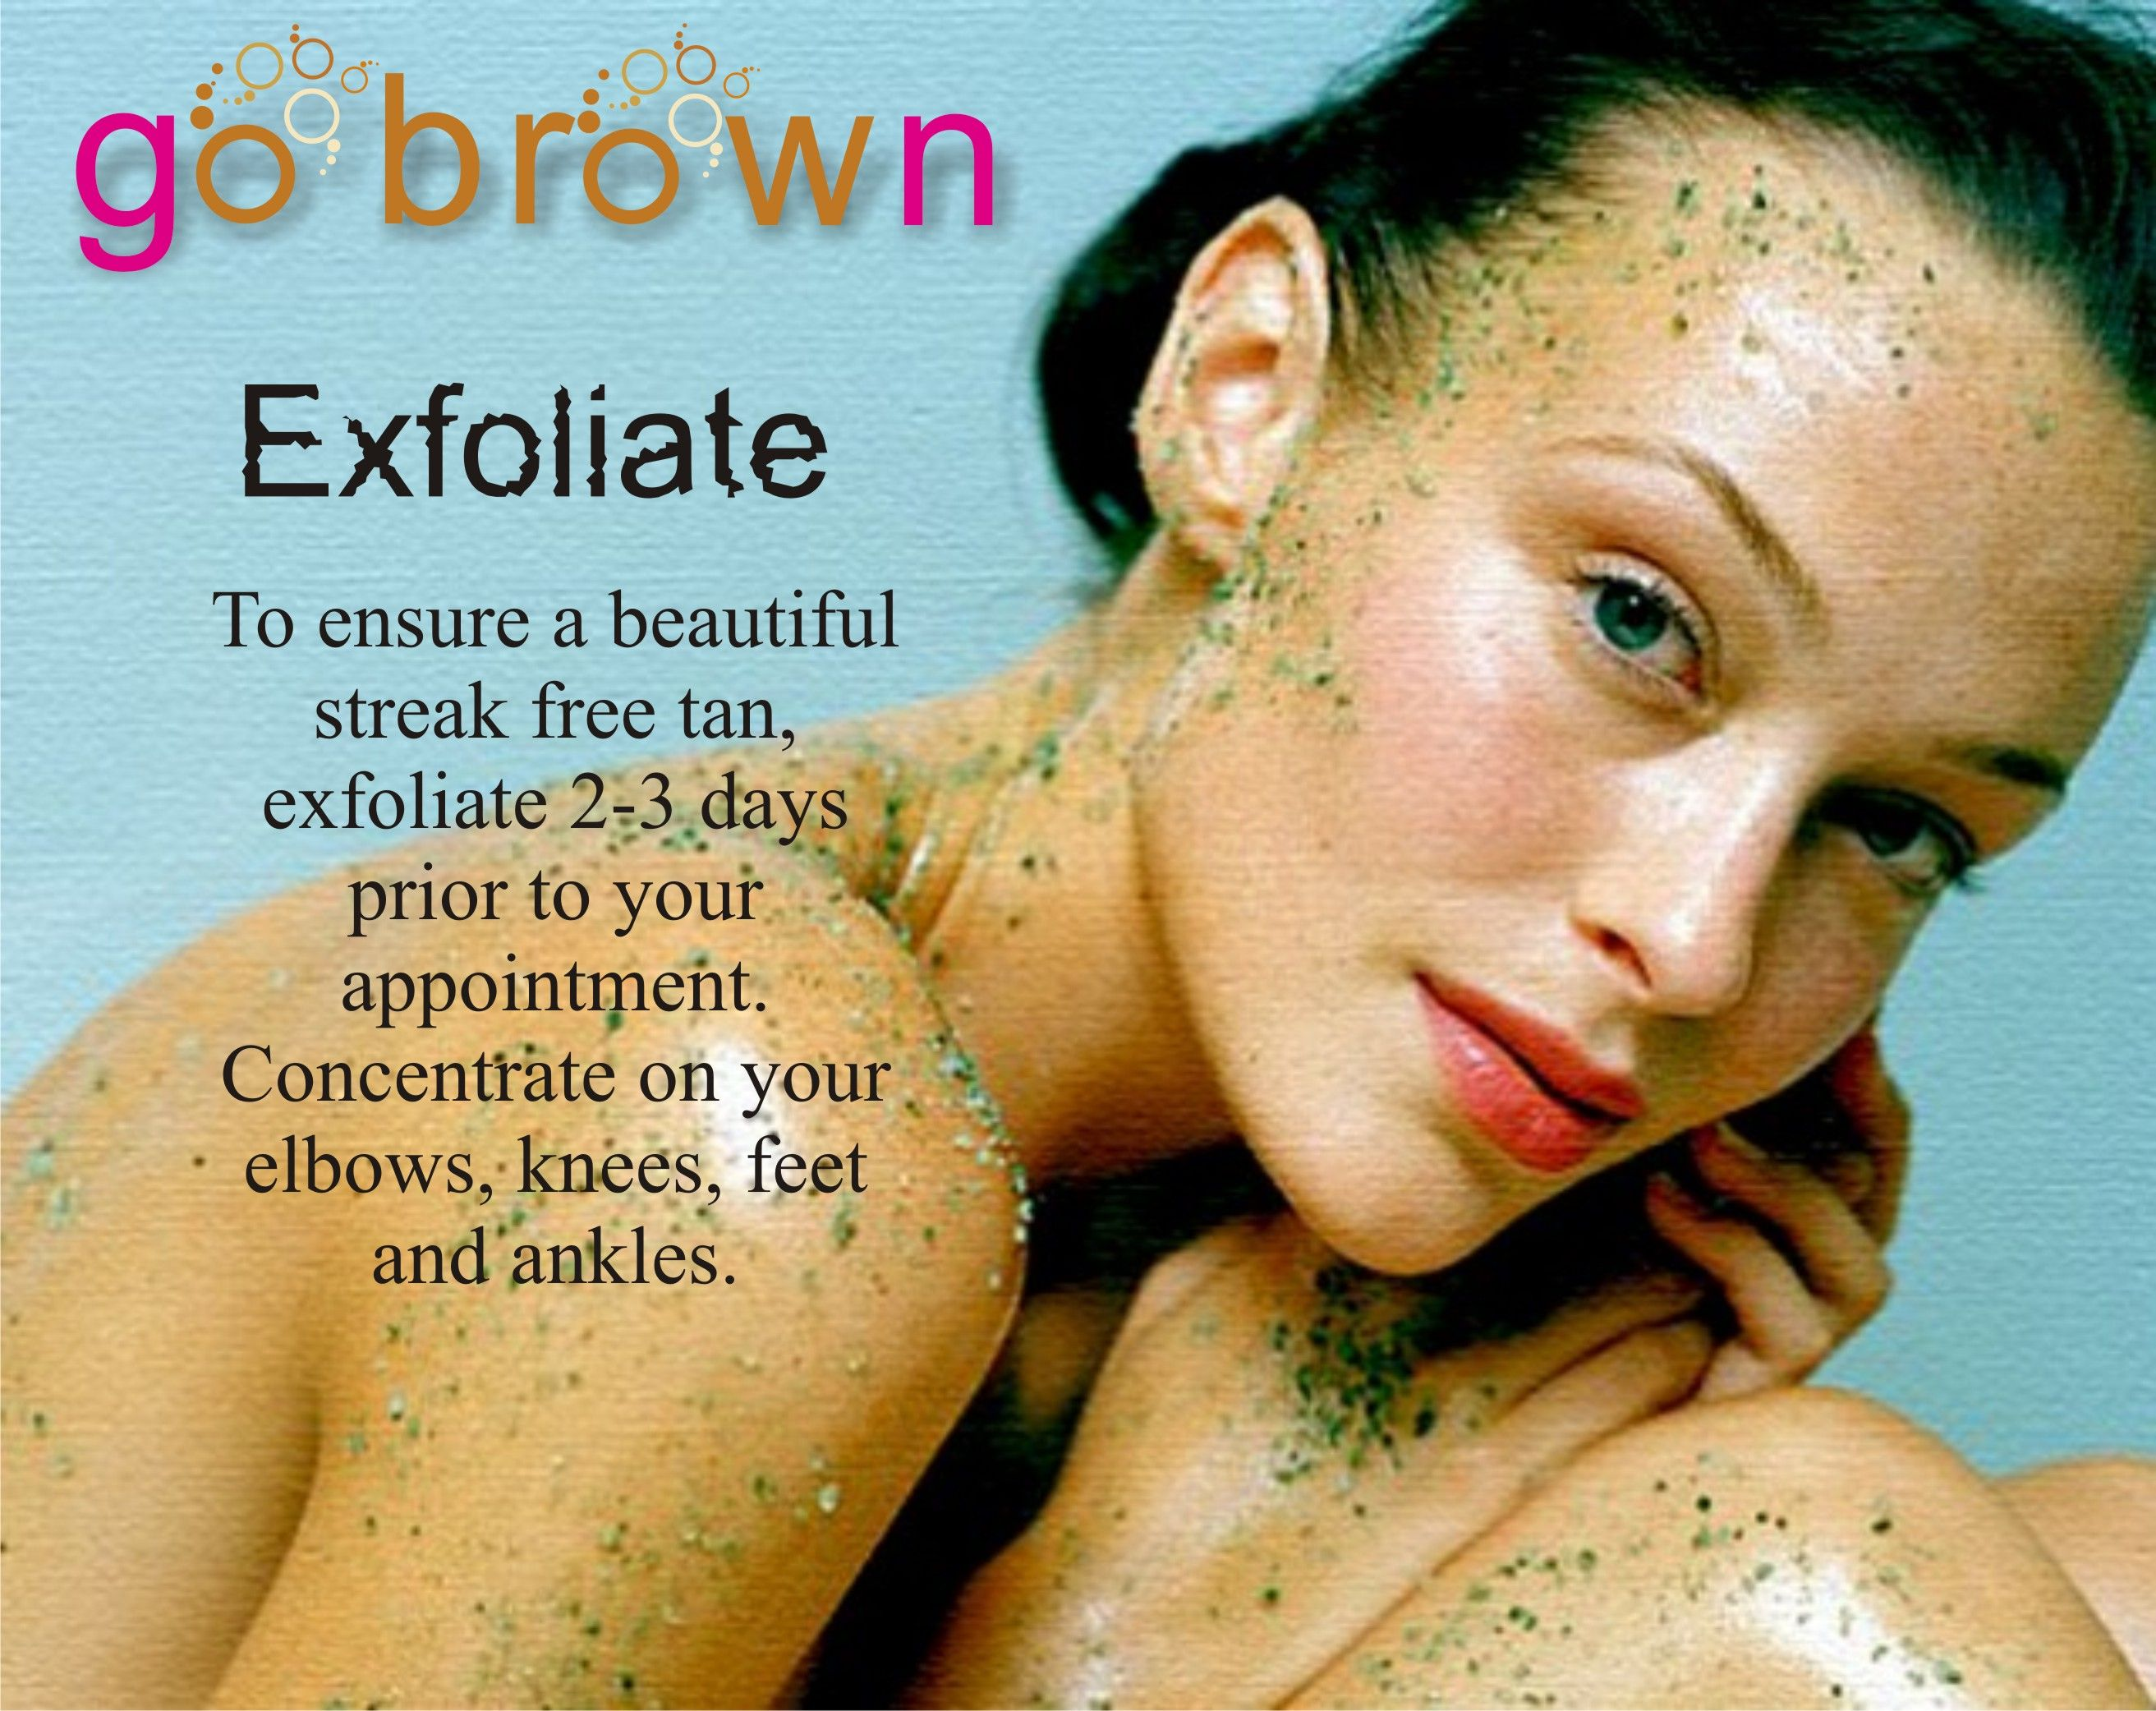 Be sure to book a spray tan appointment 2-3 days before the tan to ensure enough time for exfoliating. https://www.facebook.com/gobrowntanningcompany?ref=hl